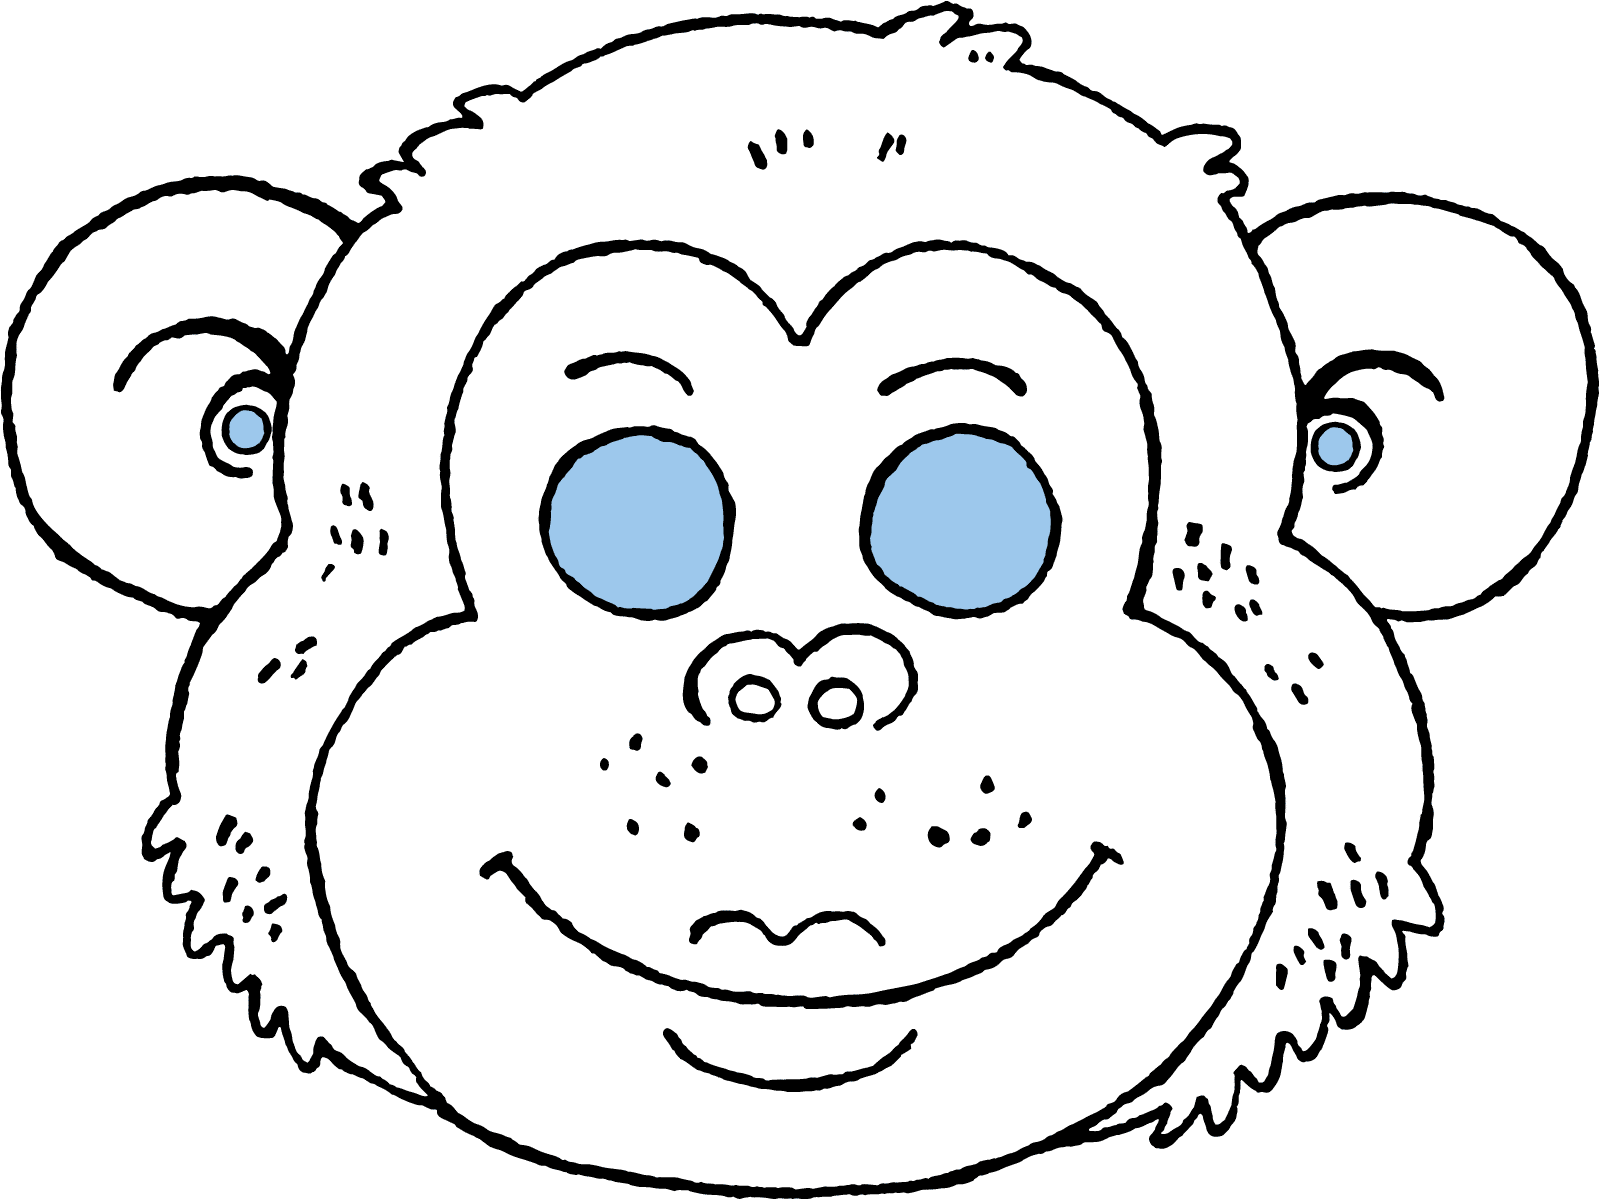 monkey mask colouring page page drawing picture 01k